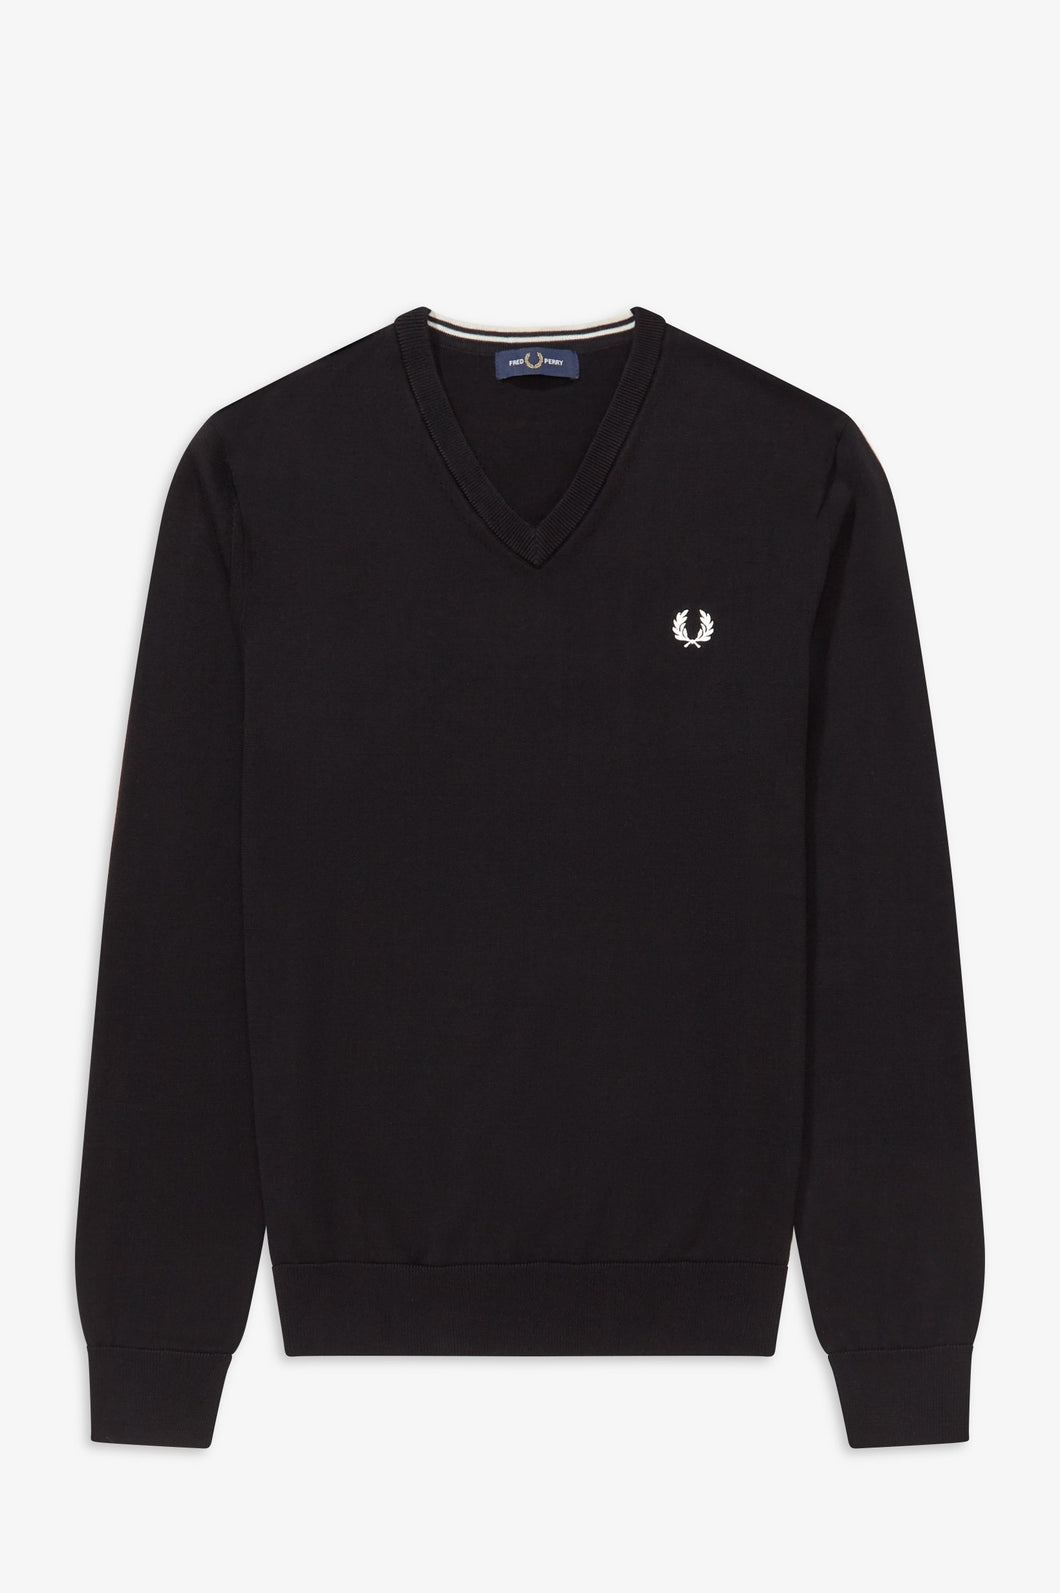 Fred Perry Black V Neck Jumper